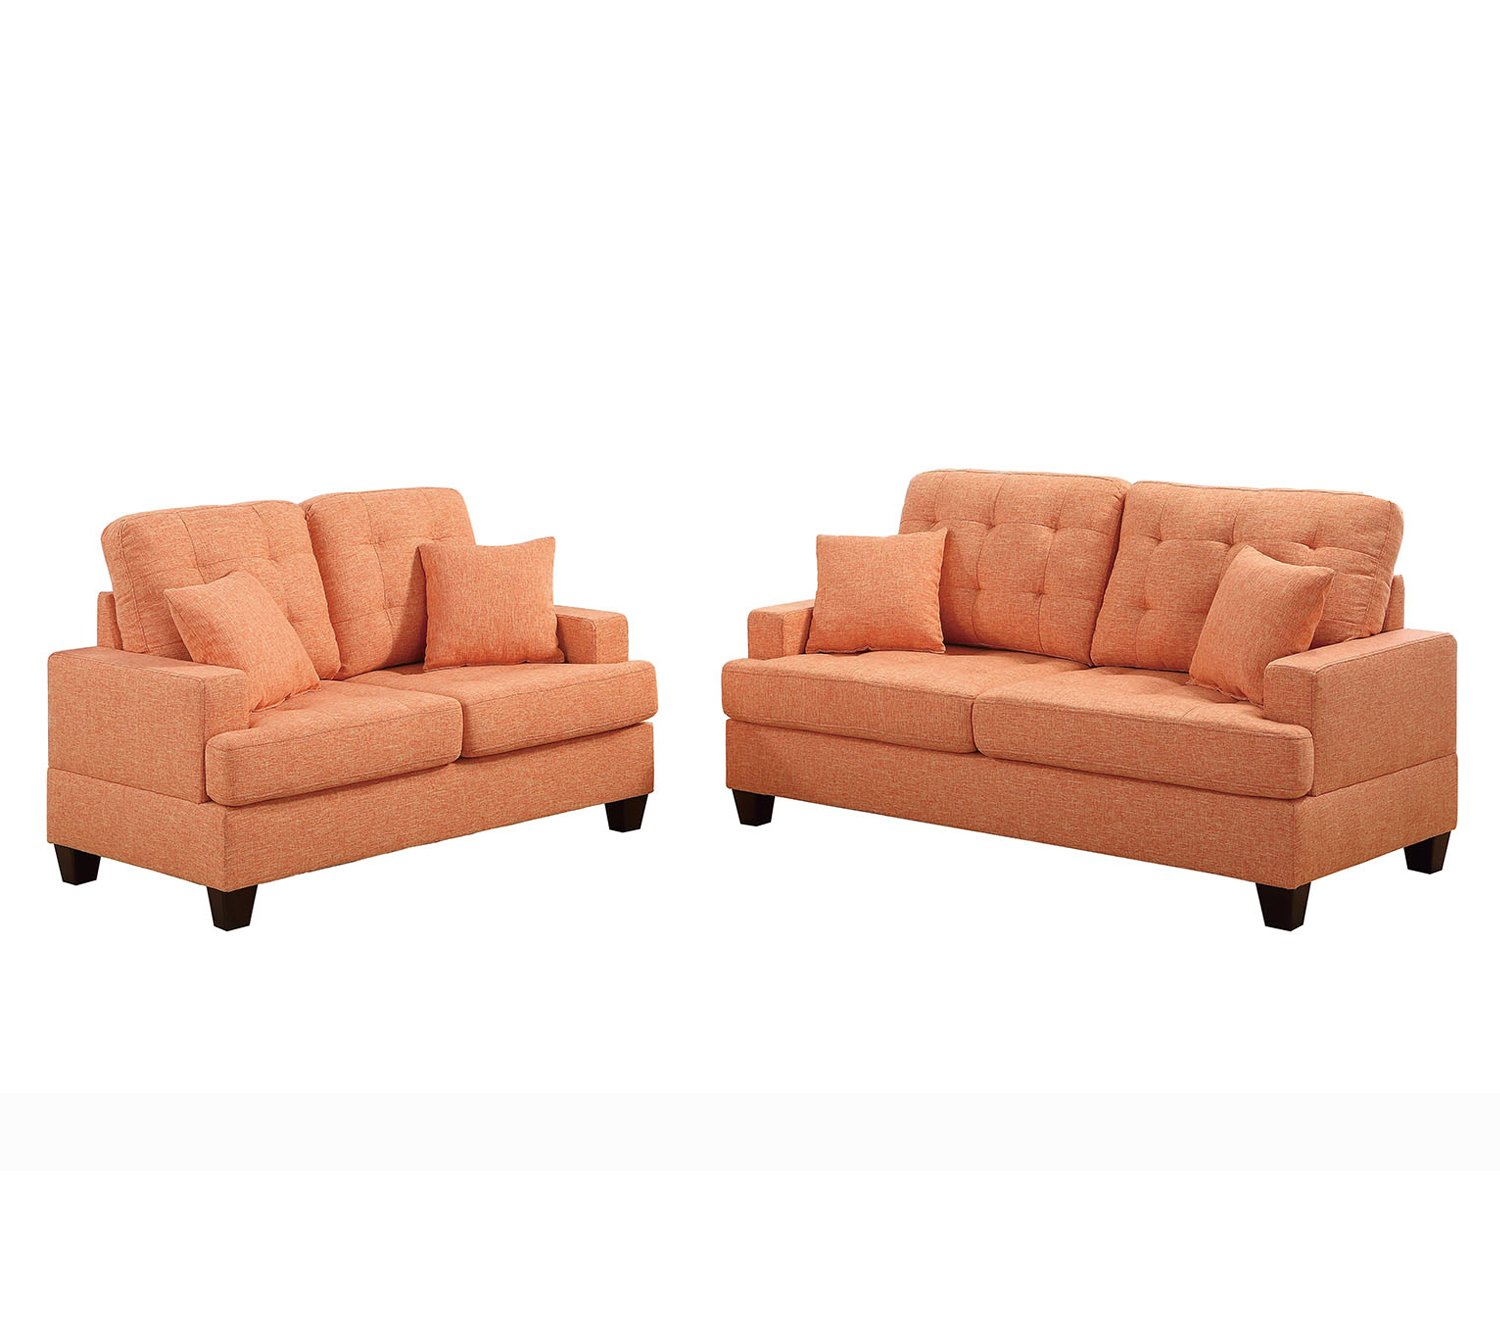 Amazon.com: Poundex F6501 Bobkona Oleta Sofa and Loveseat, Coffee ...